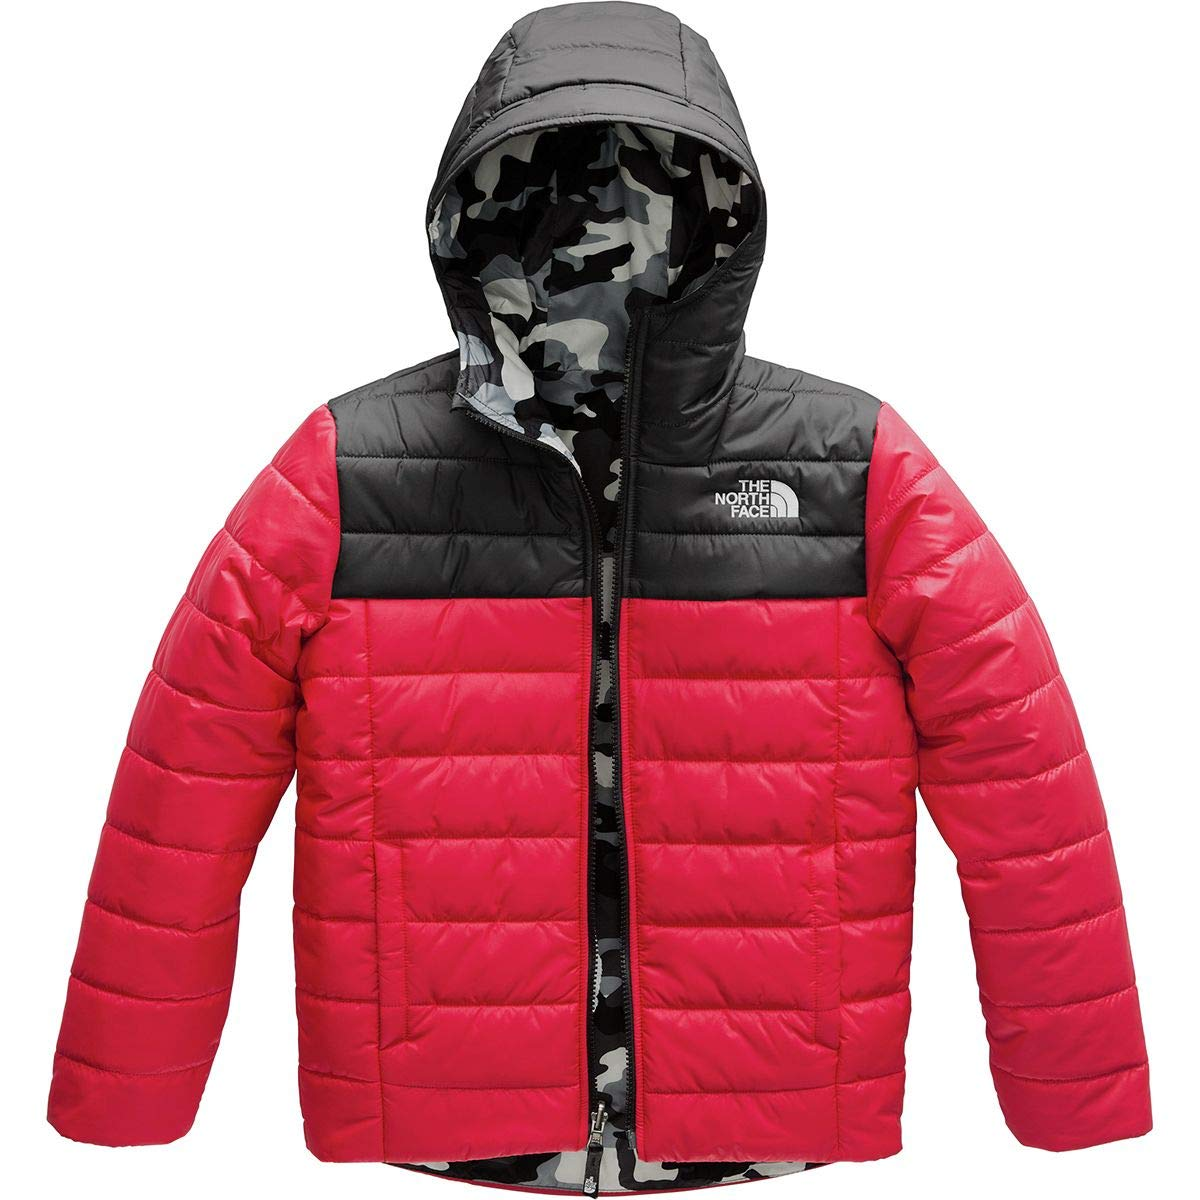 The North Face B Rev Perrito Jkt Chaquetas, Niños